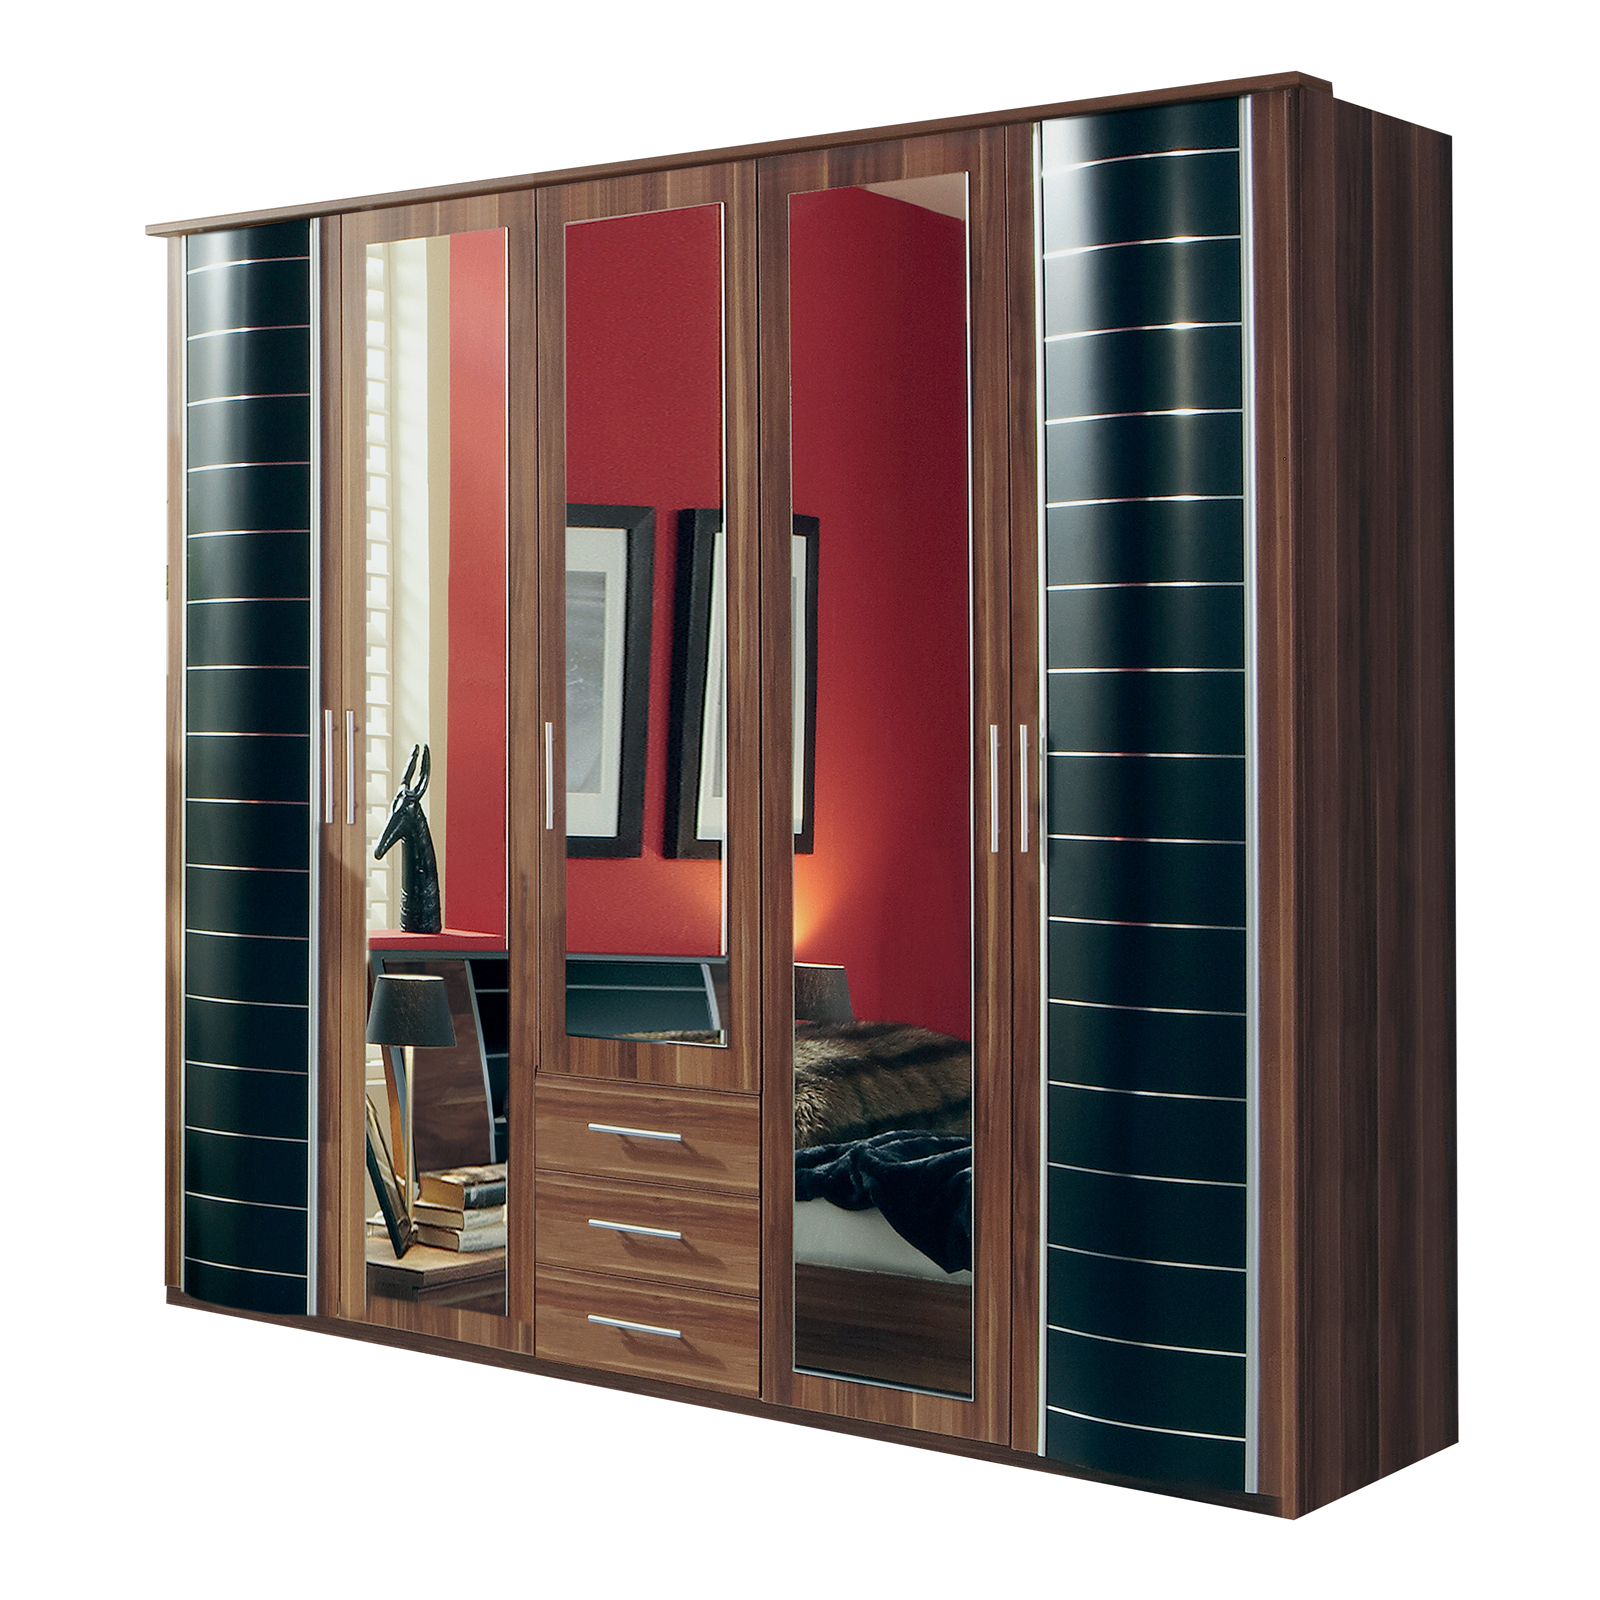 kleiderschrank yvonne schlafzimmer schrank in nussbaum schwarz 225 cm breit ebay. Black Bedroom Furniture Sets. Home Design Ideas